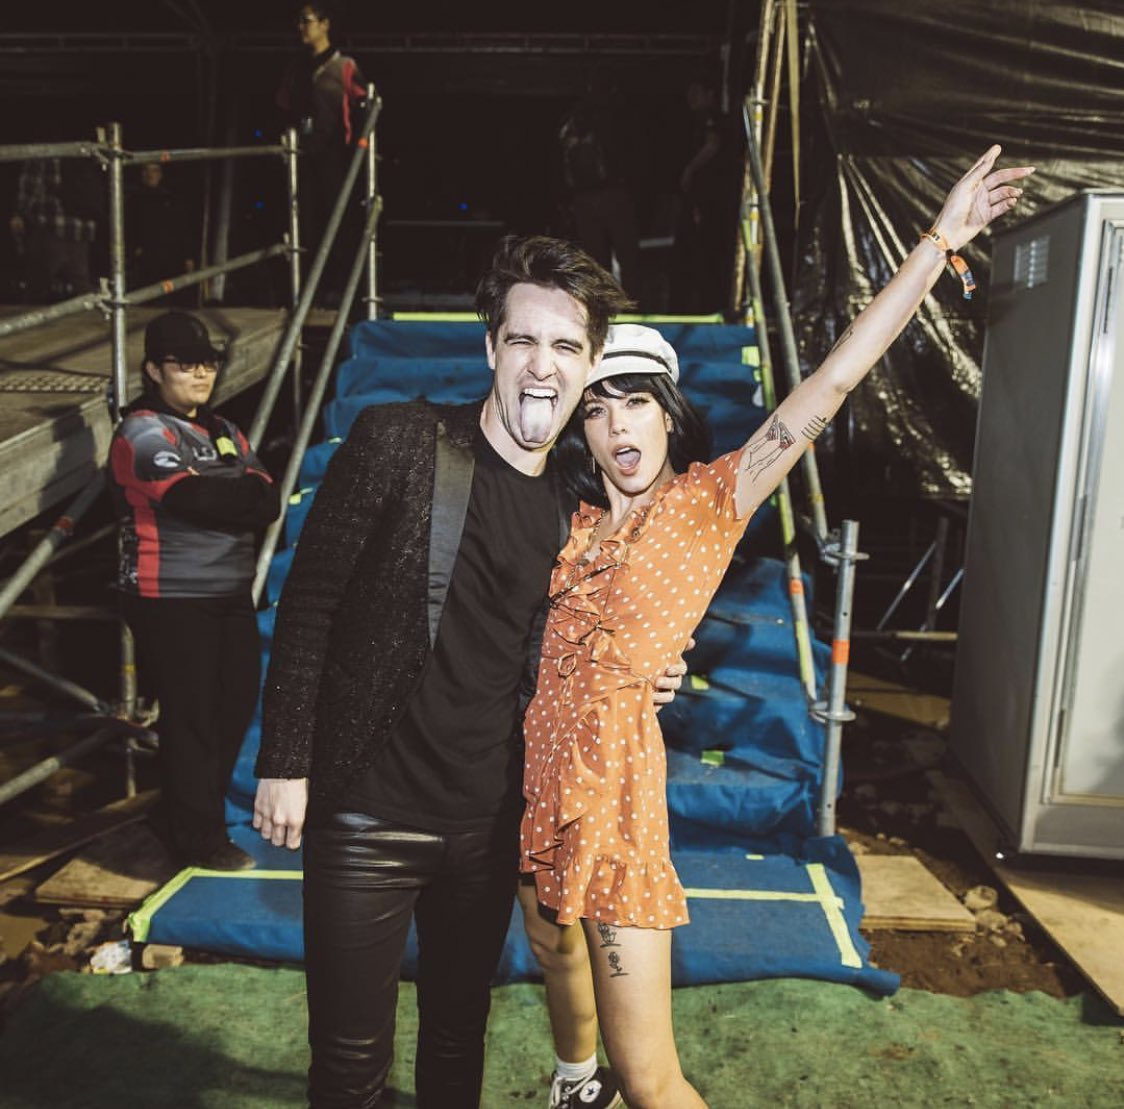 Halsey and Brendon tonight! 📸:@JakeChams